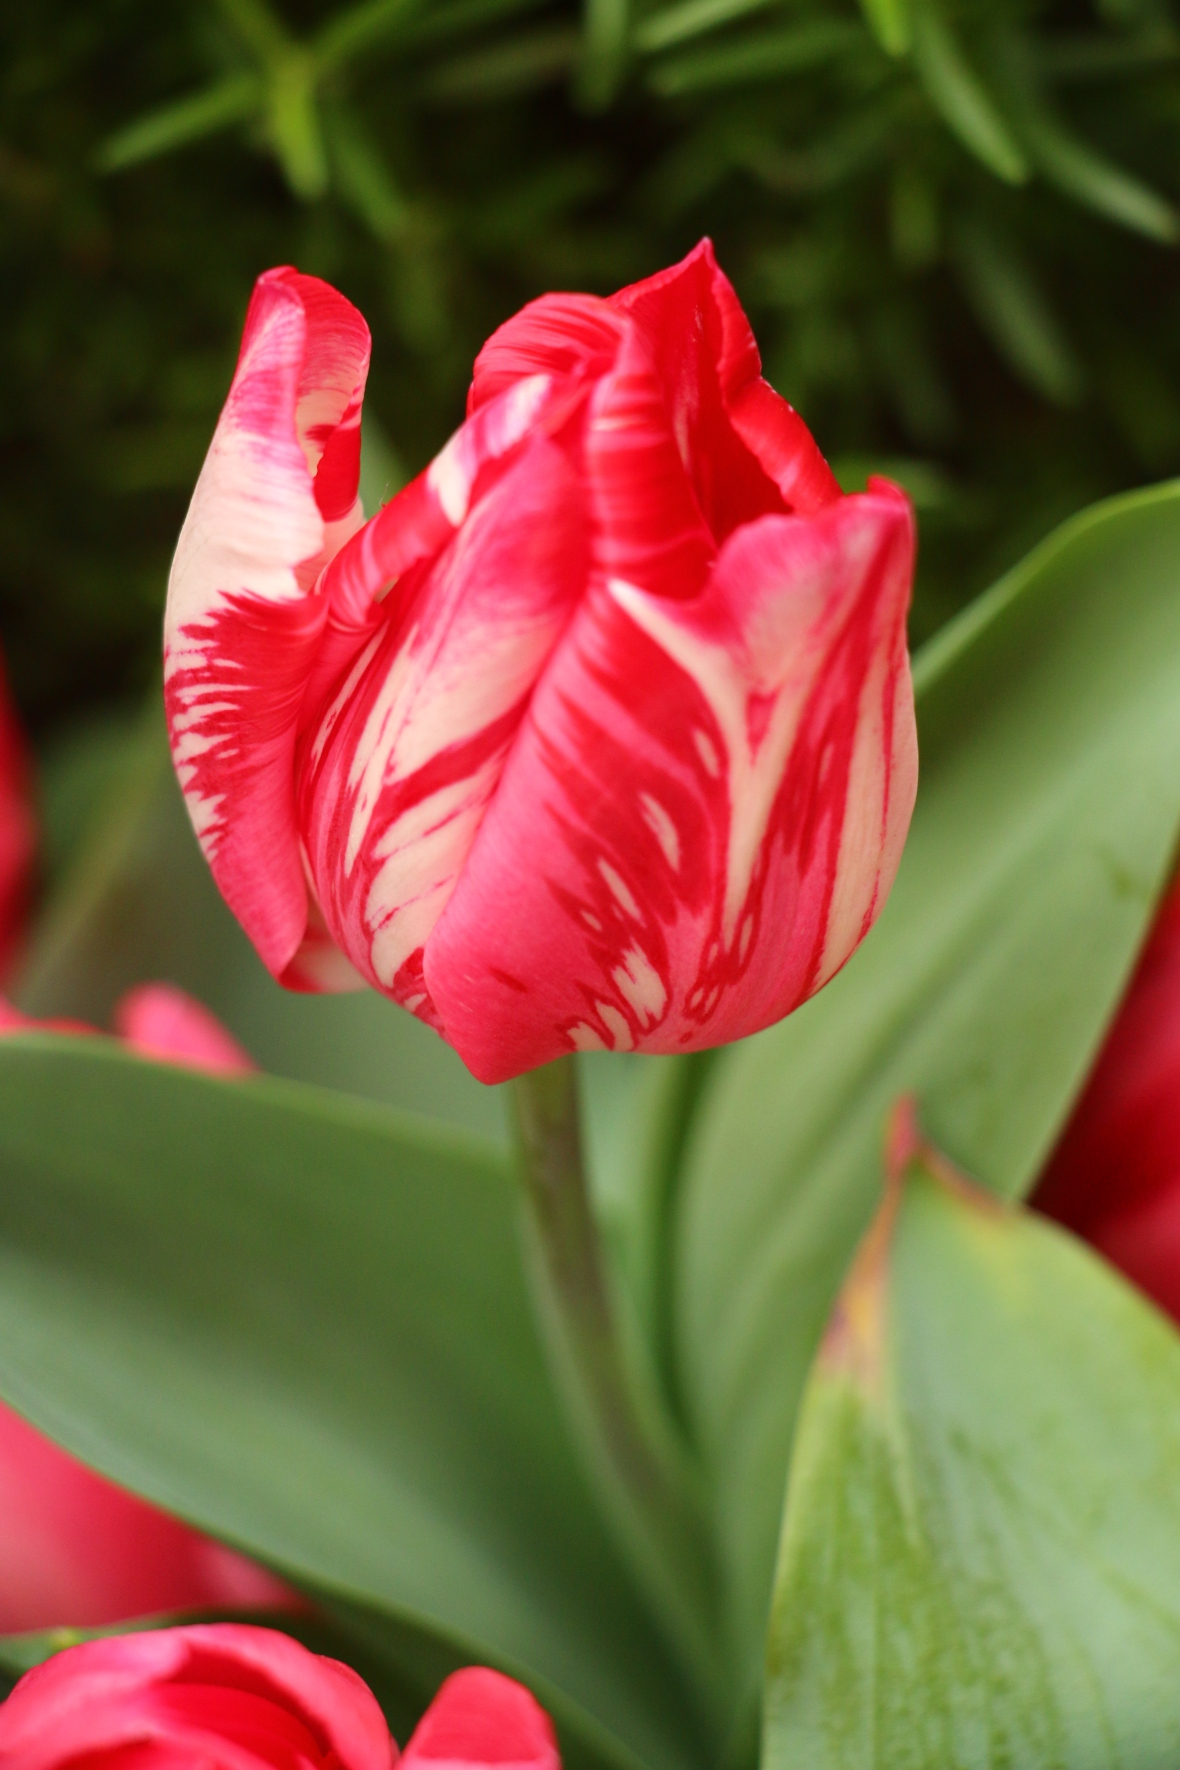 Variegated Red & White Tulip Macro II